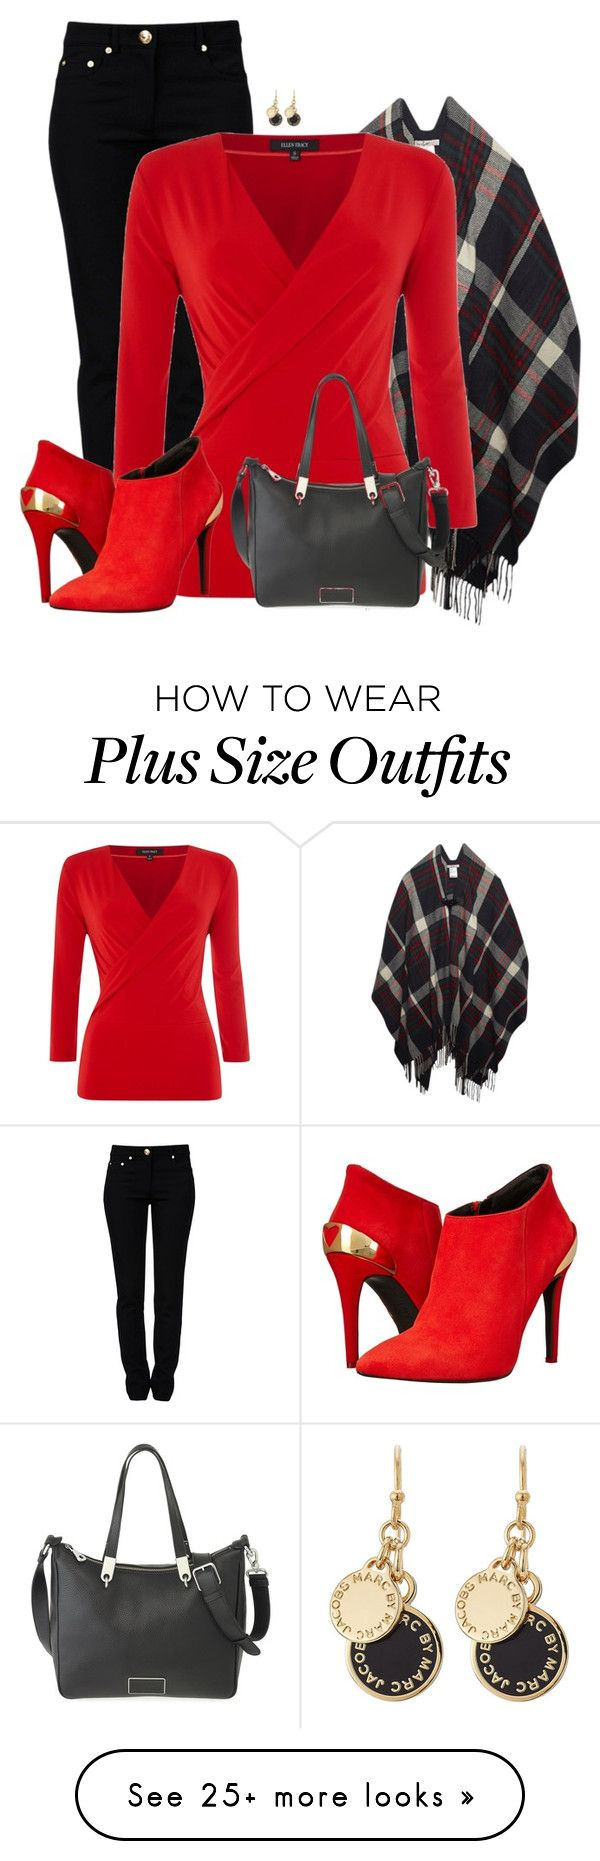 """Red Boots"" by cnh92 on Polyvore featuring Moschino, Wet Seal, Ellen Tracy, Love Moschino and Marc by Marc Jacobs"